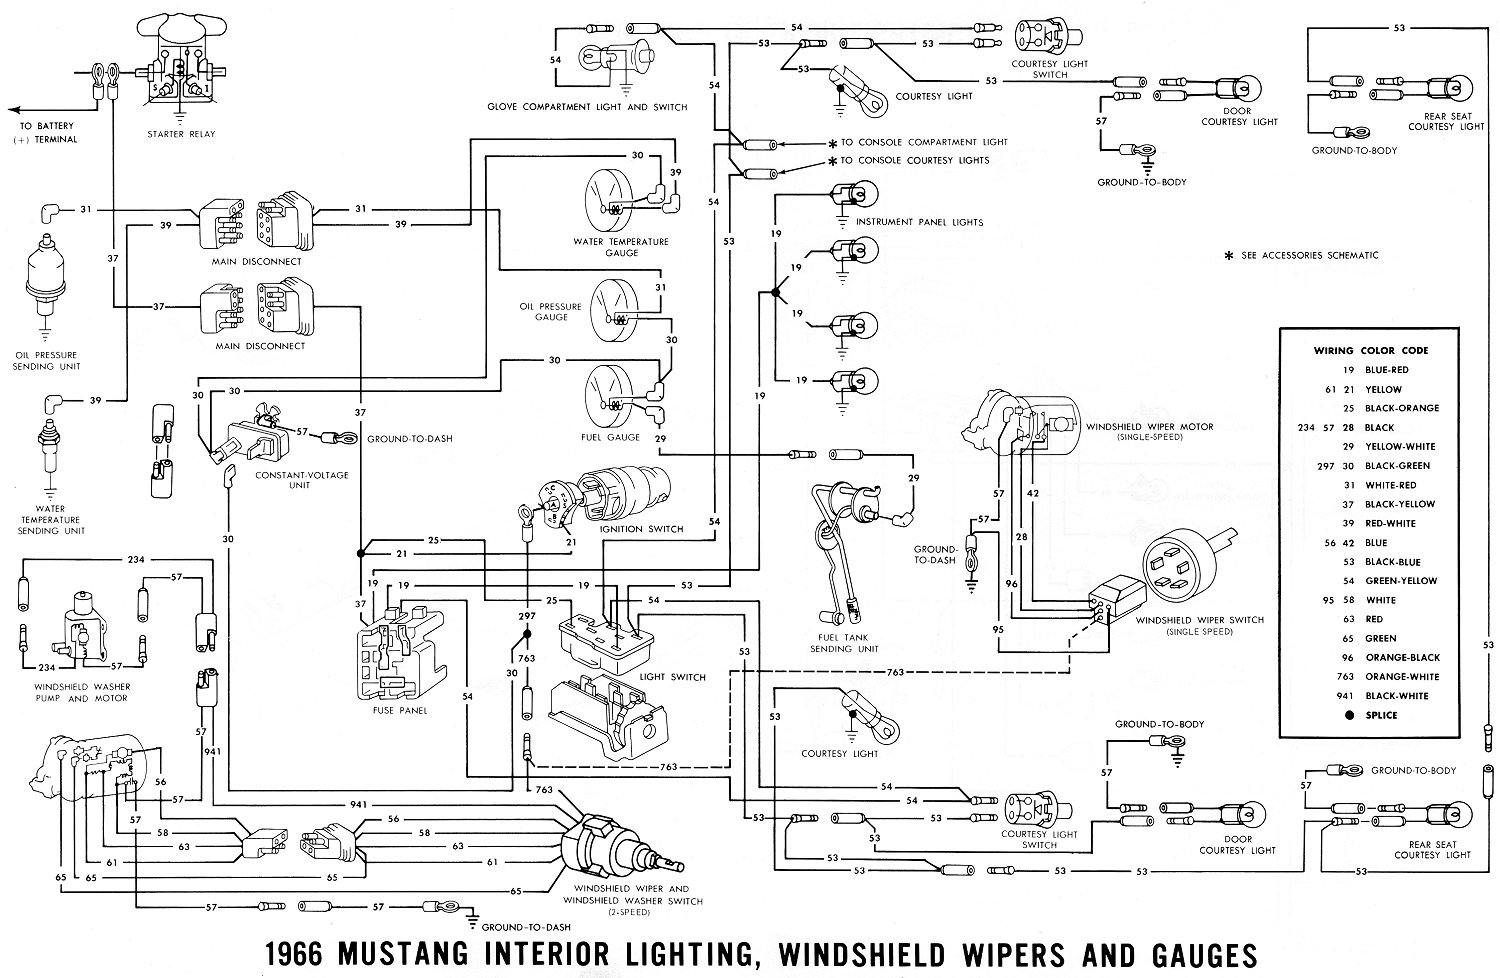 1966 Mustang Wiring Diagrams Average Joe Restoration 1972 Ford Turn Signal Switch Diagram Schematic